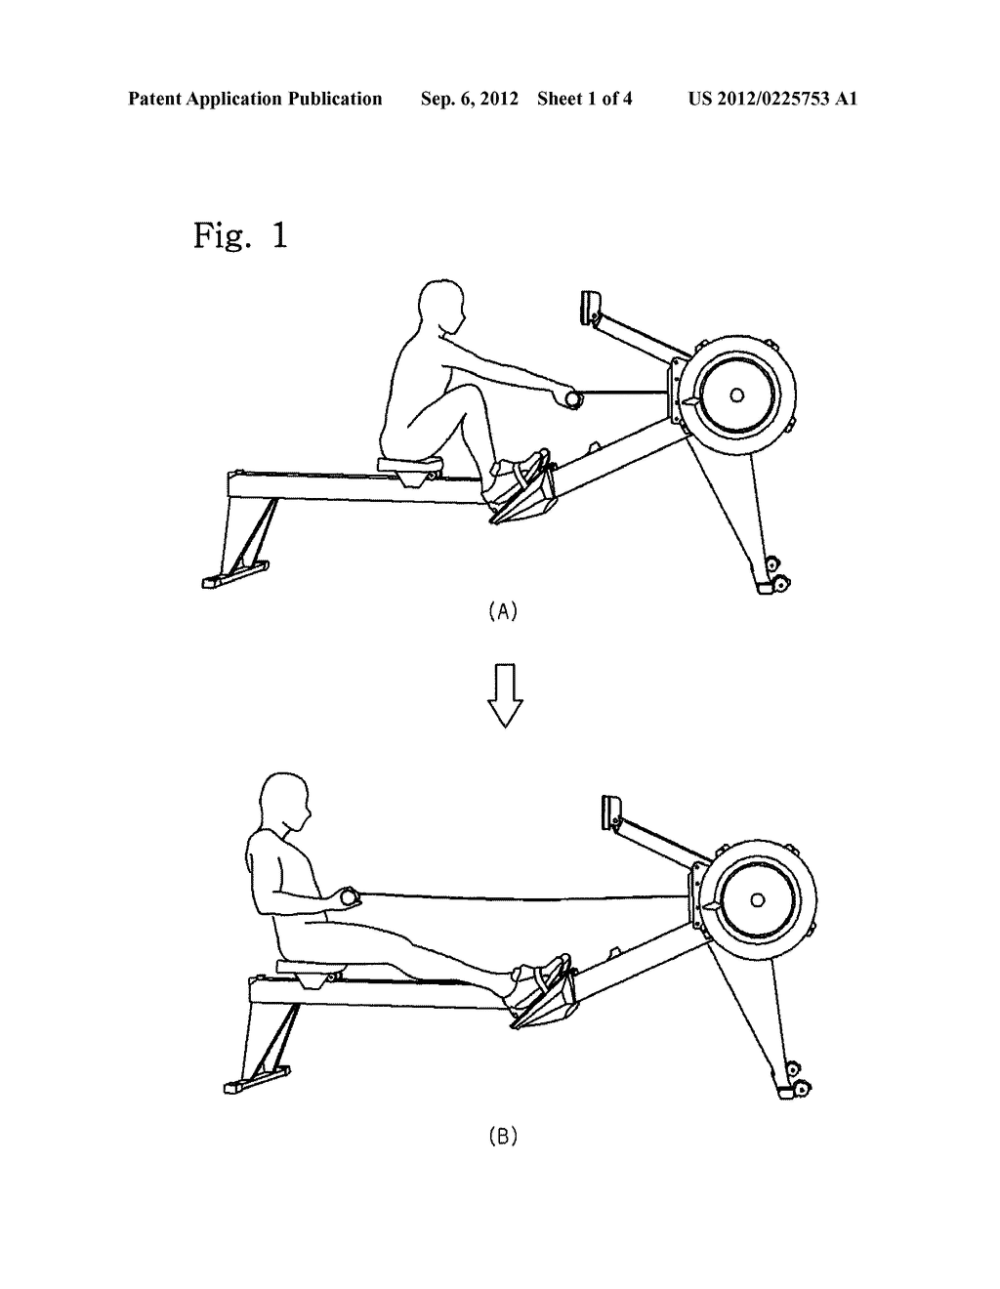 medium resolution of rowing machine exercise assisting device diagram schematic and image 02